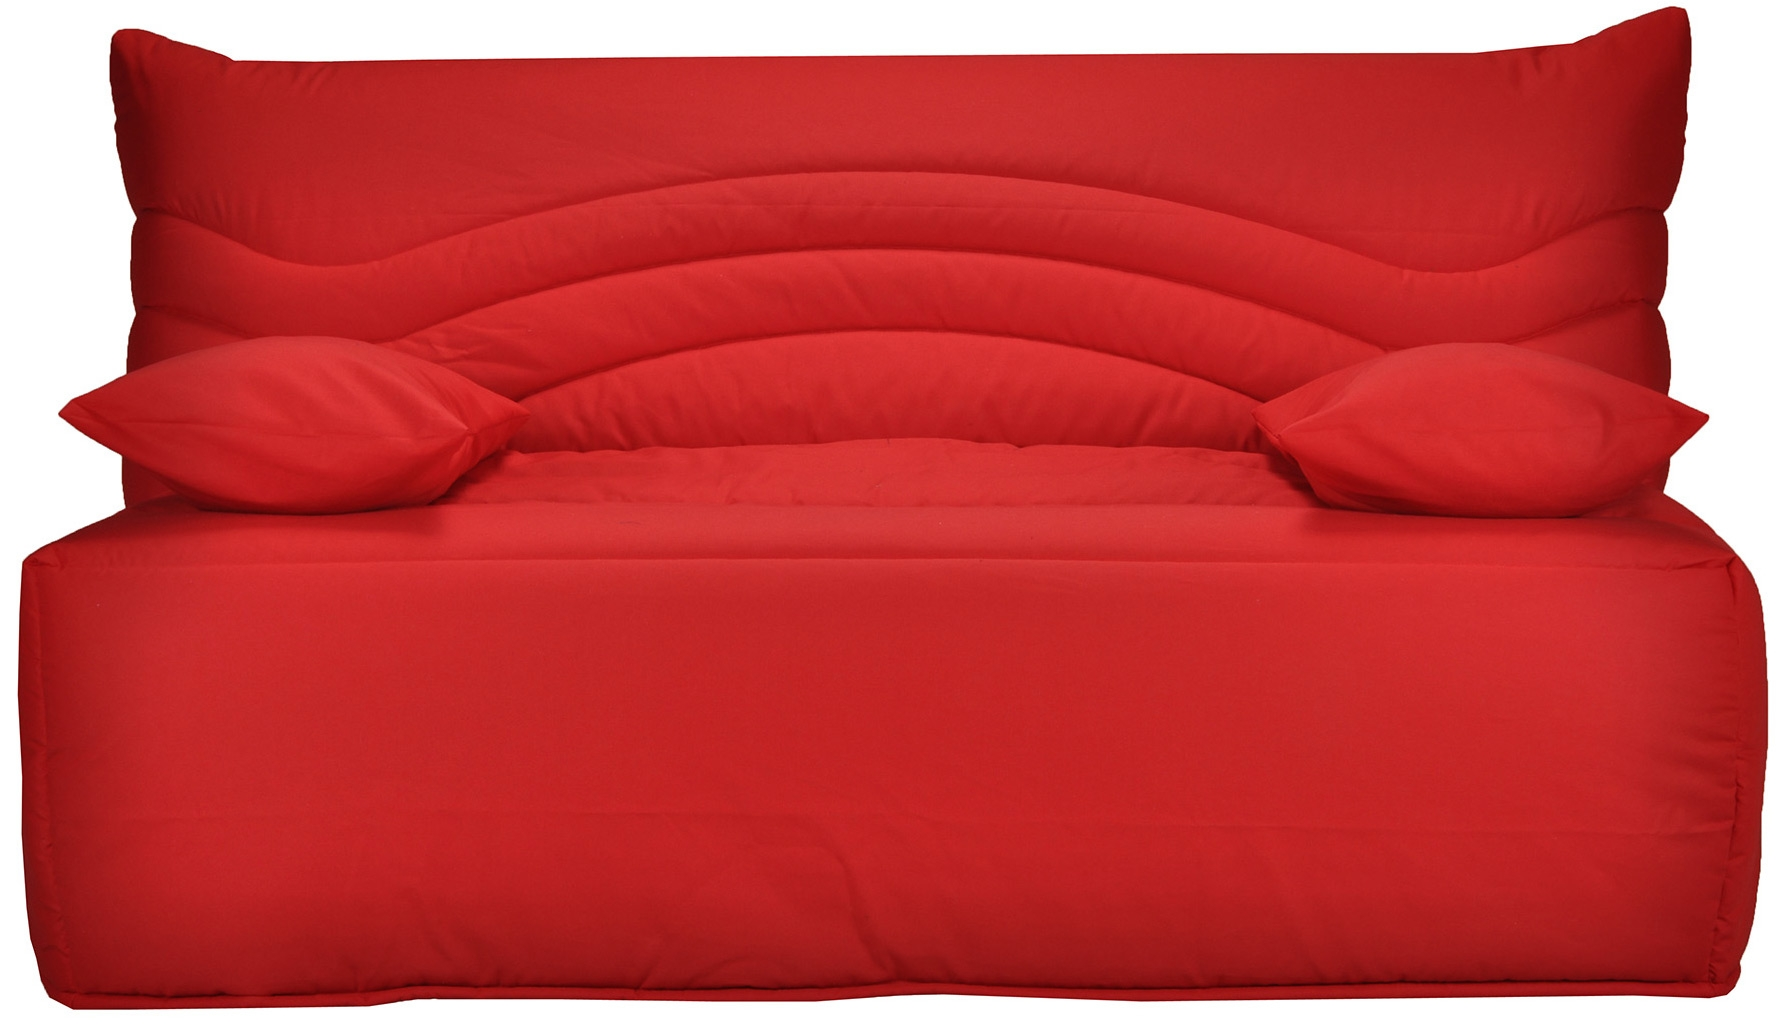 banquette bz rouge 140 matelas sofaconfort 12 cm brioca. Black Bedroom Furniture Sets. Home Design Ideas